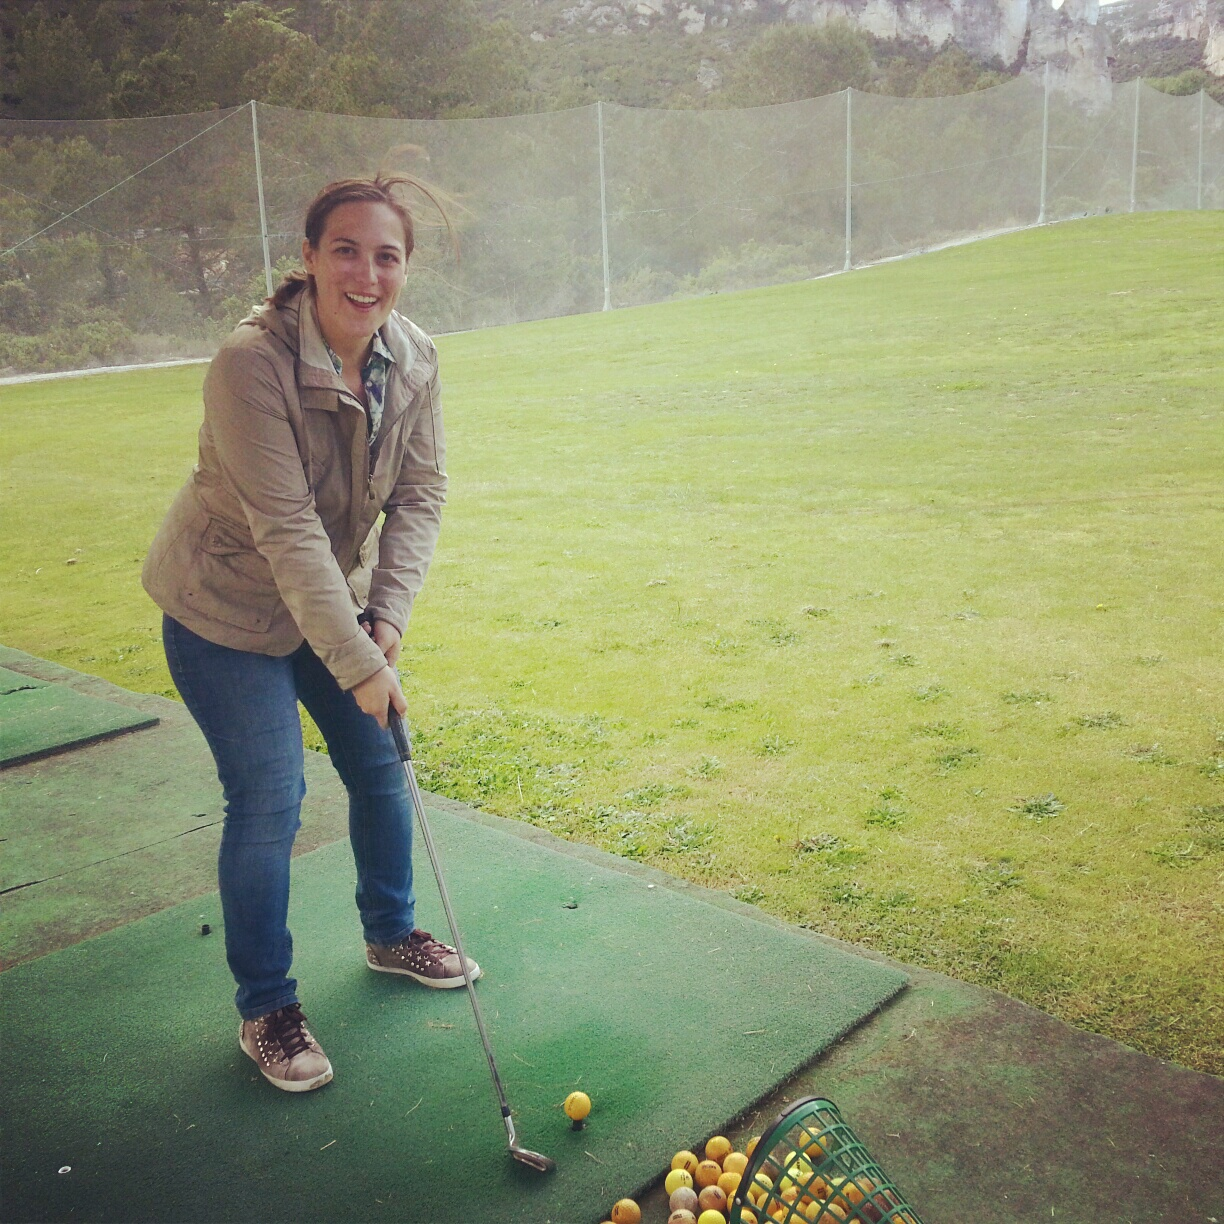 Pitch and putt la figuerola